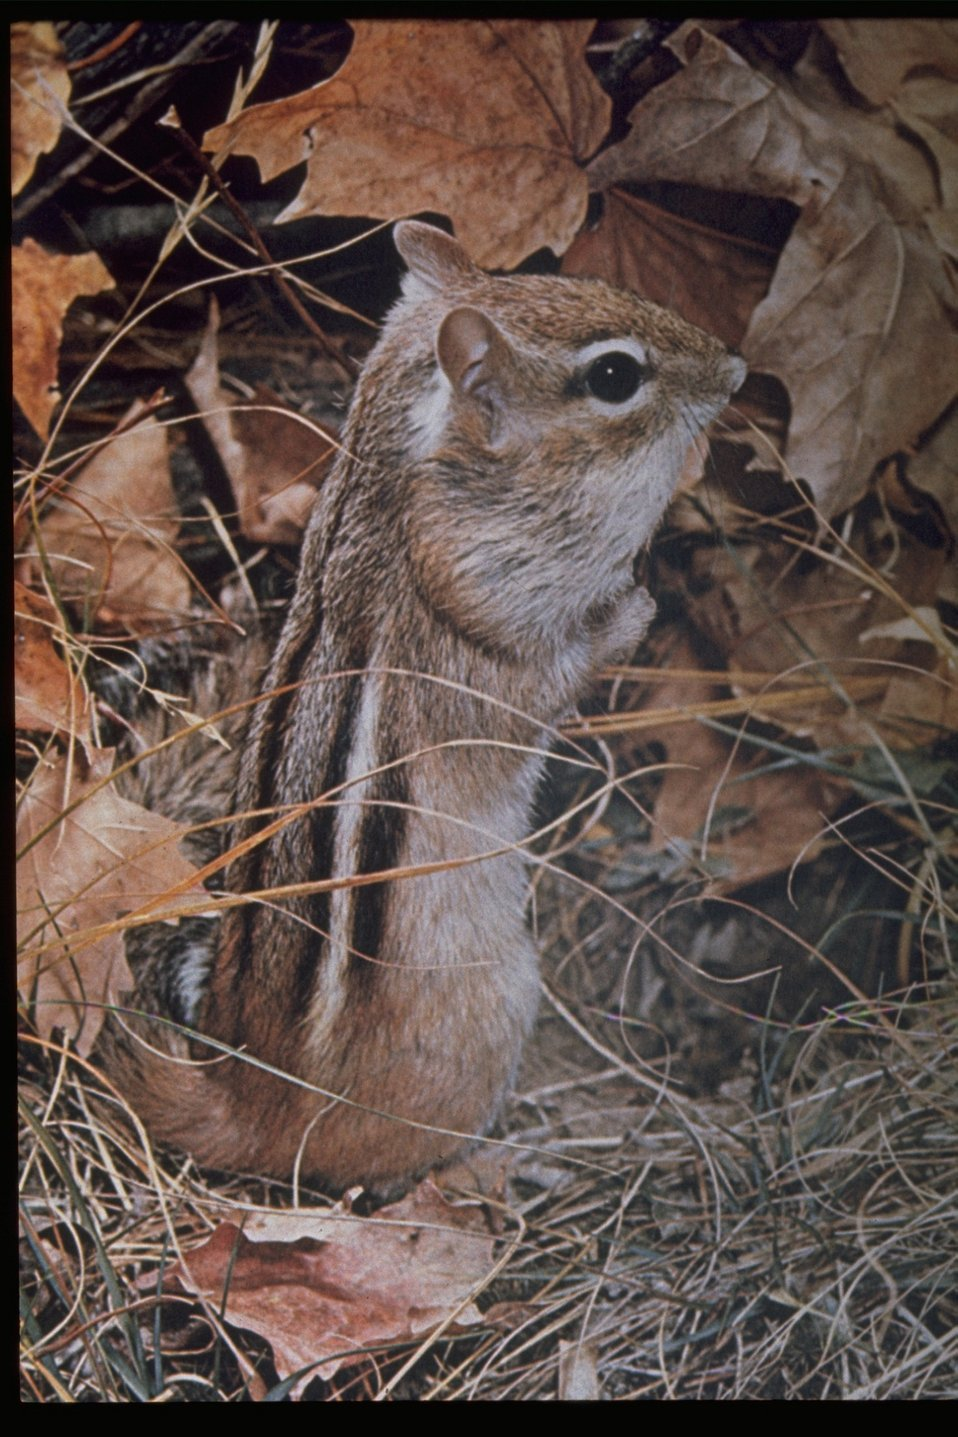 A chipmunk standing next to dry leaves.